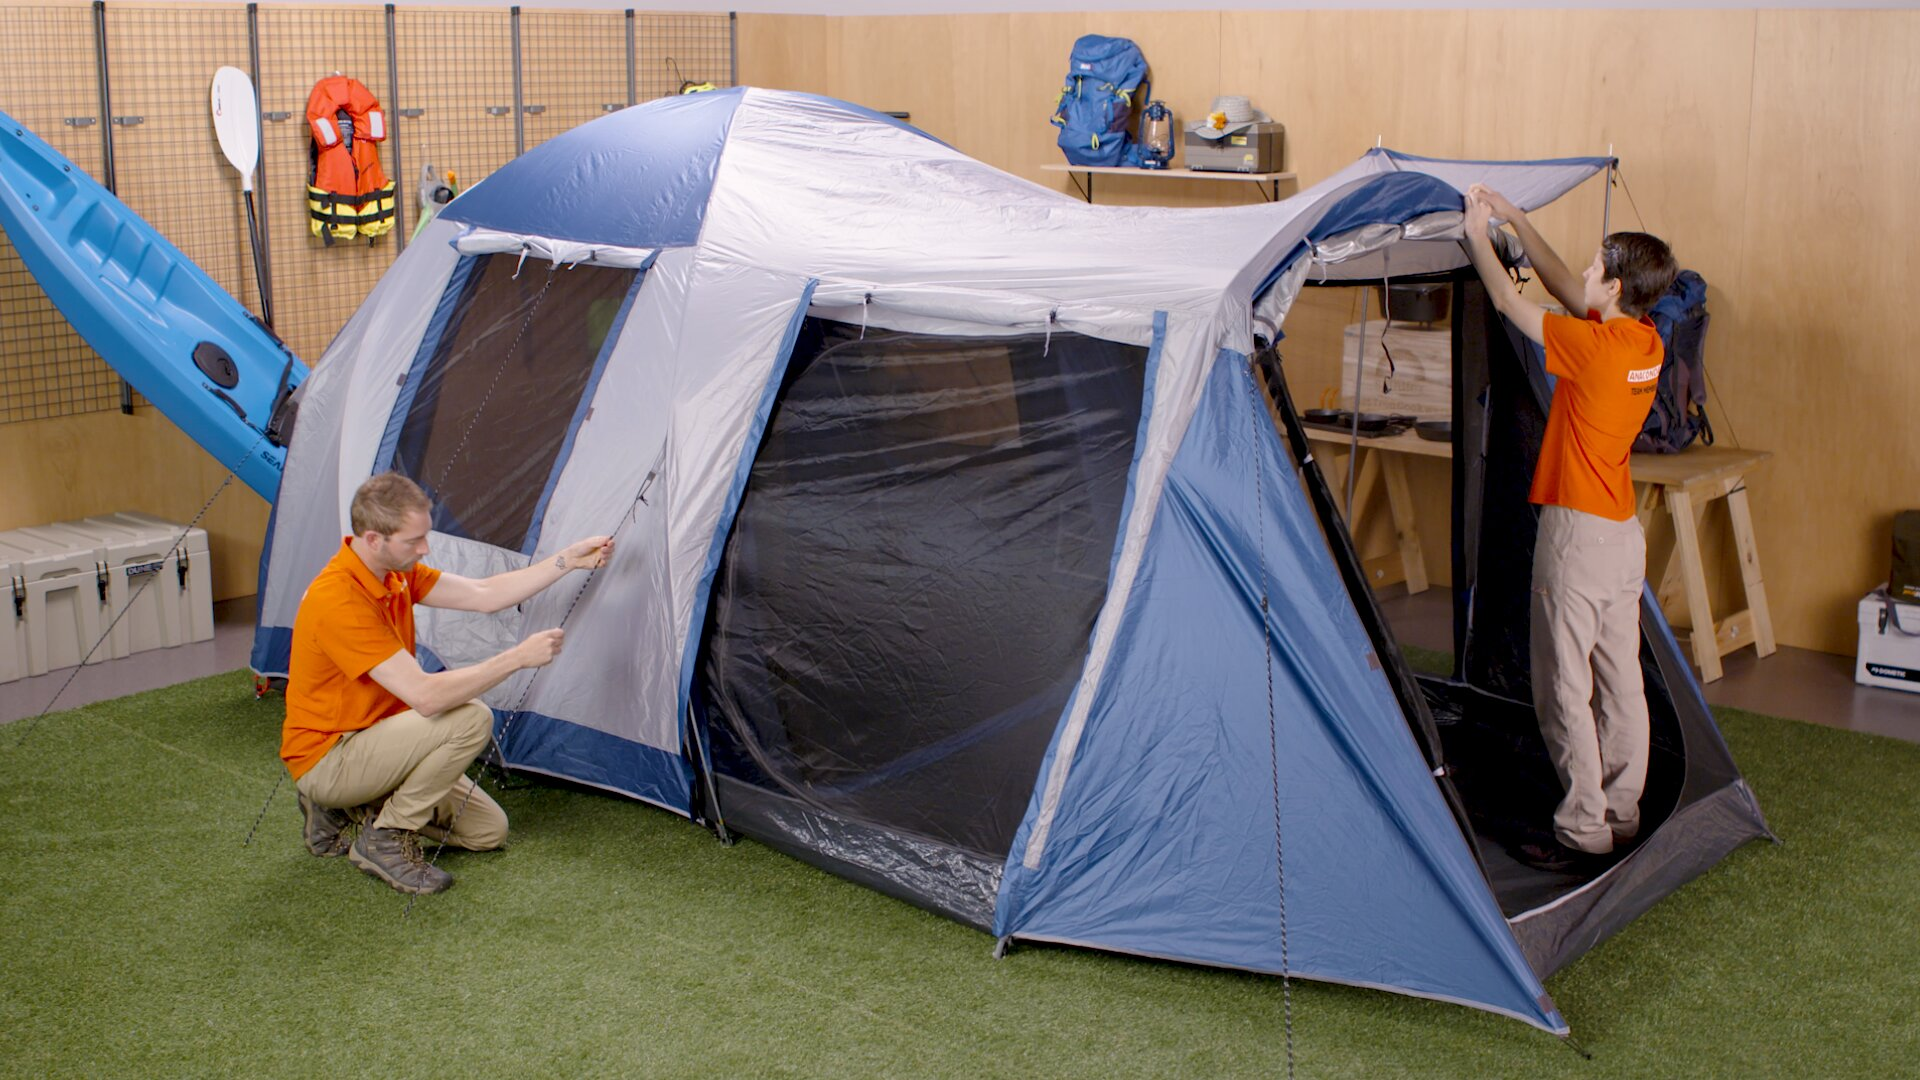 How To Choose A Camping Tent - Family Tent